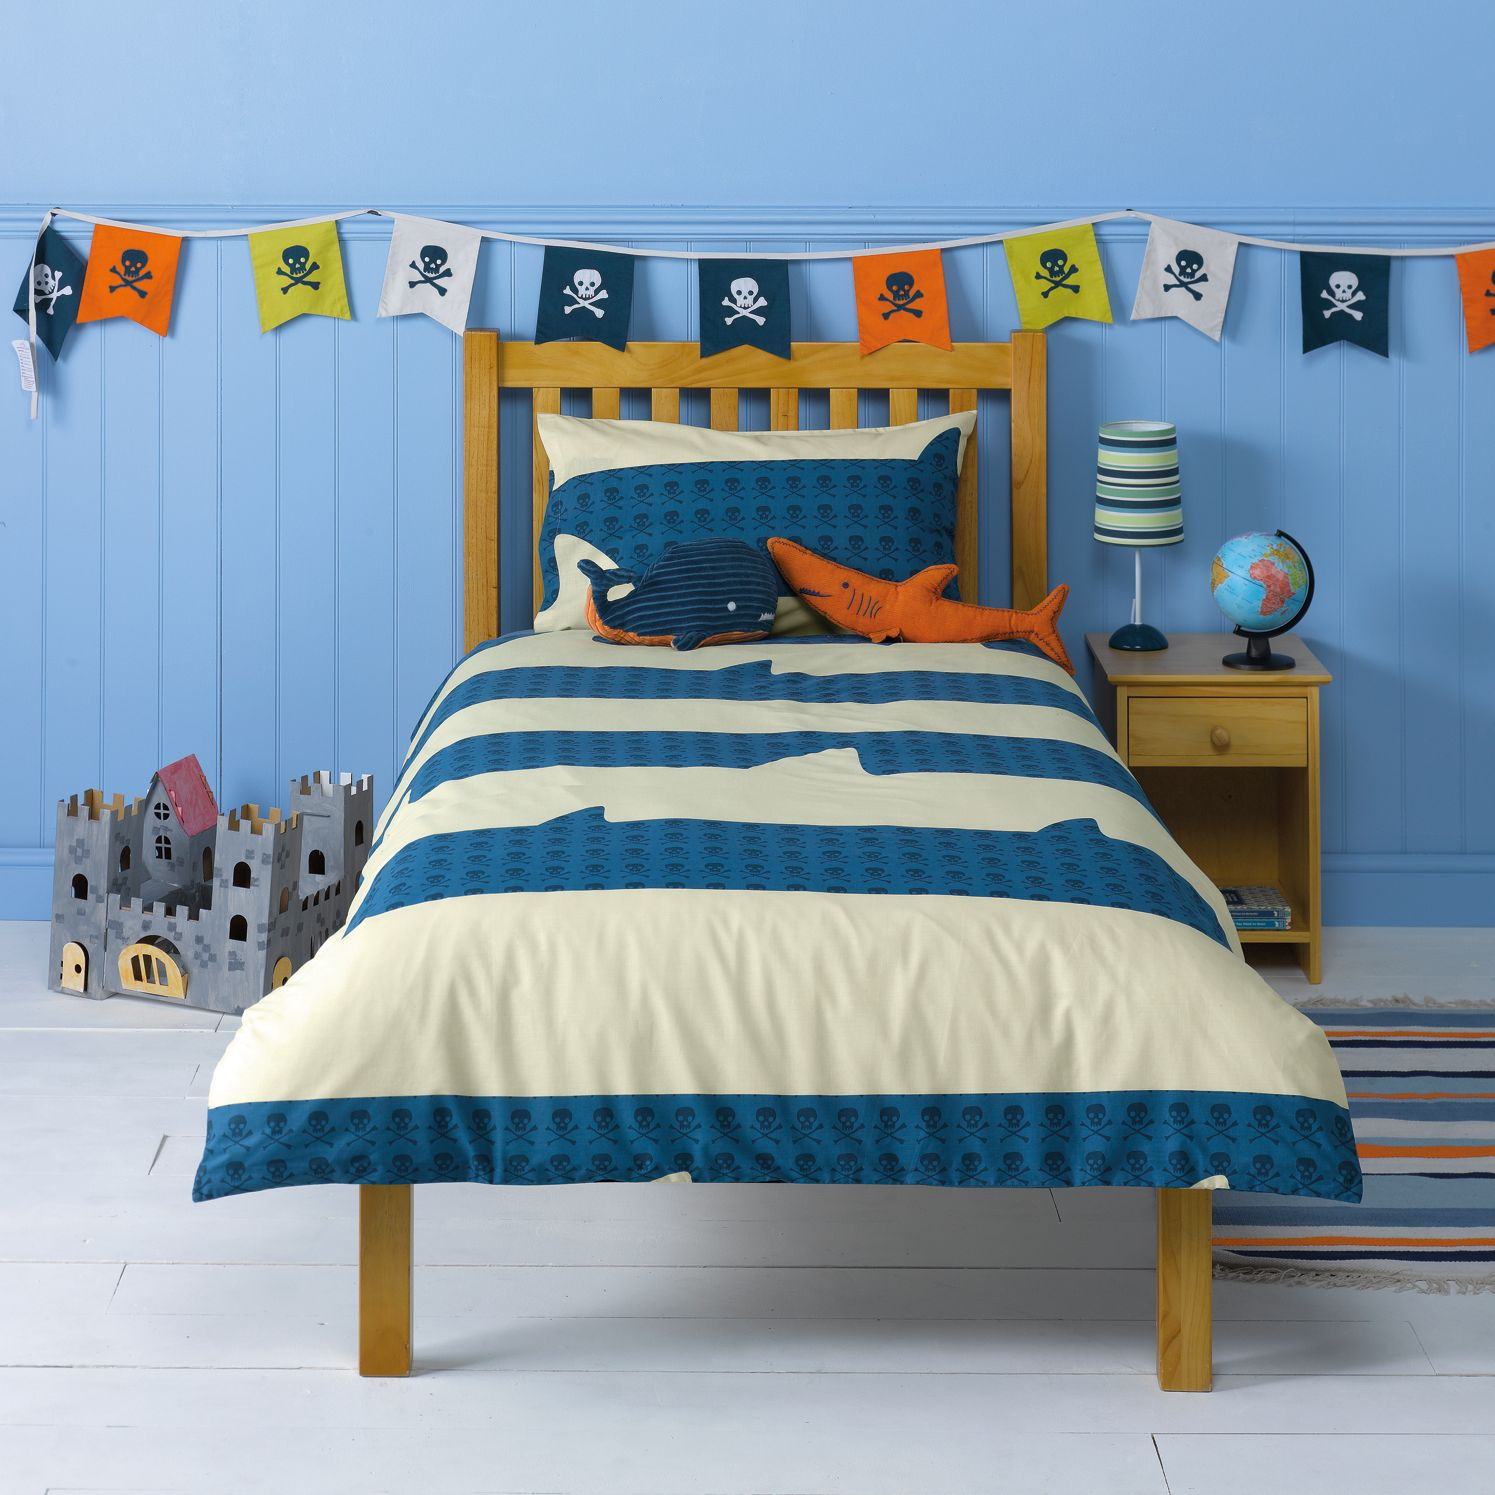 Boys Duvet Cover Sets - Sweetgalas : boys quilt cover sets - Adamdwight.com